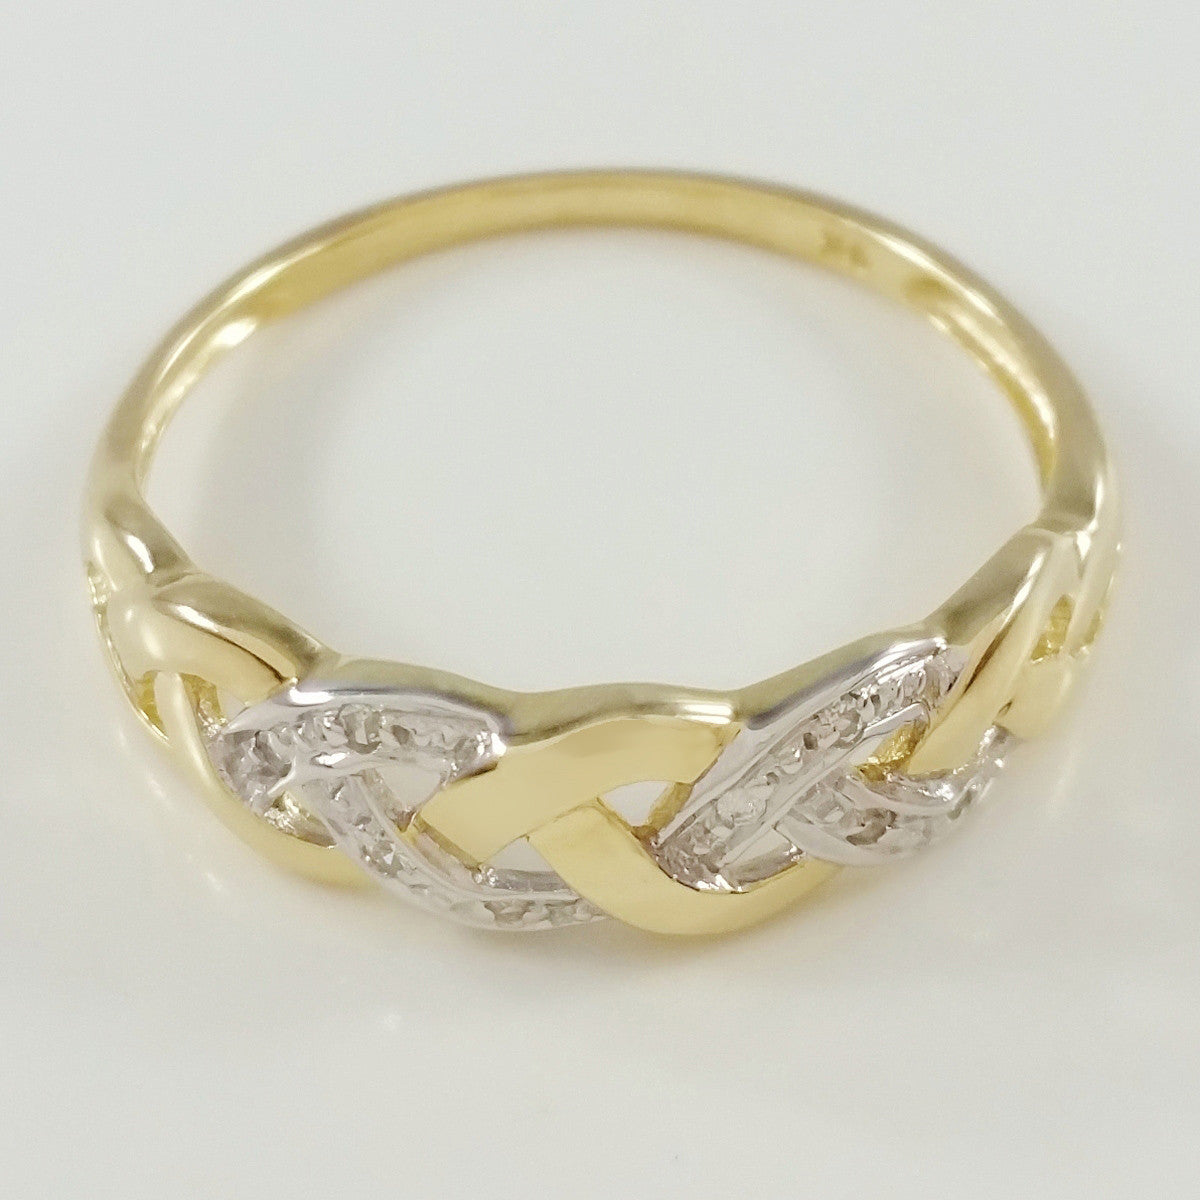 9K SOLID GOLD ENDLESS KNOT CELTIC BAND RING WITH 8 DIAMONDS.